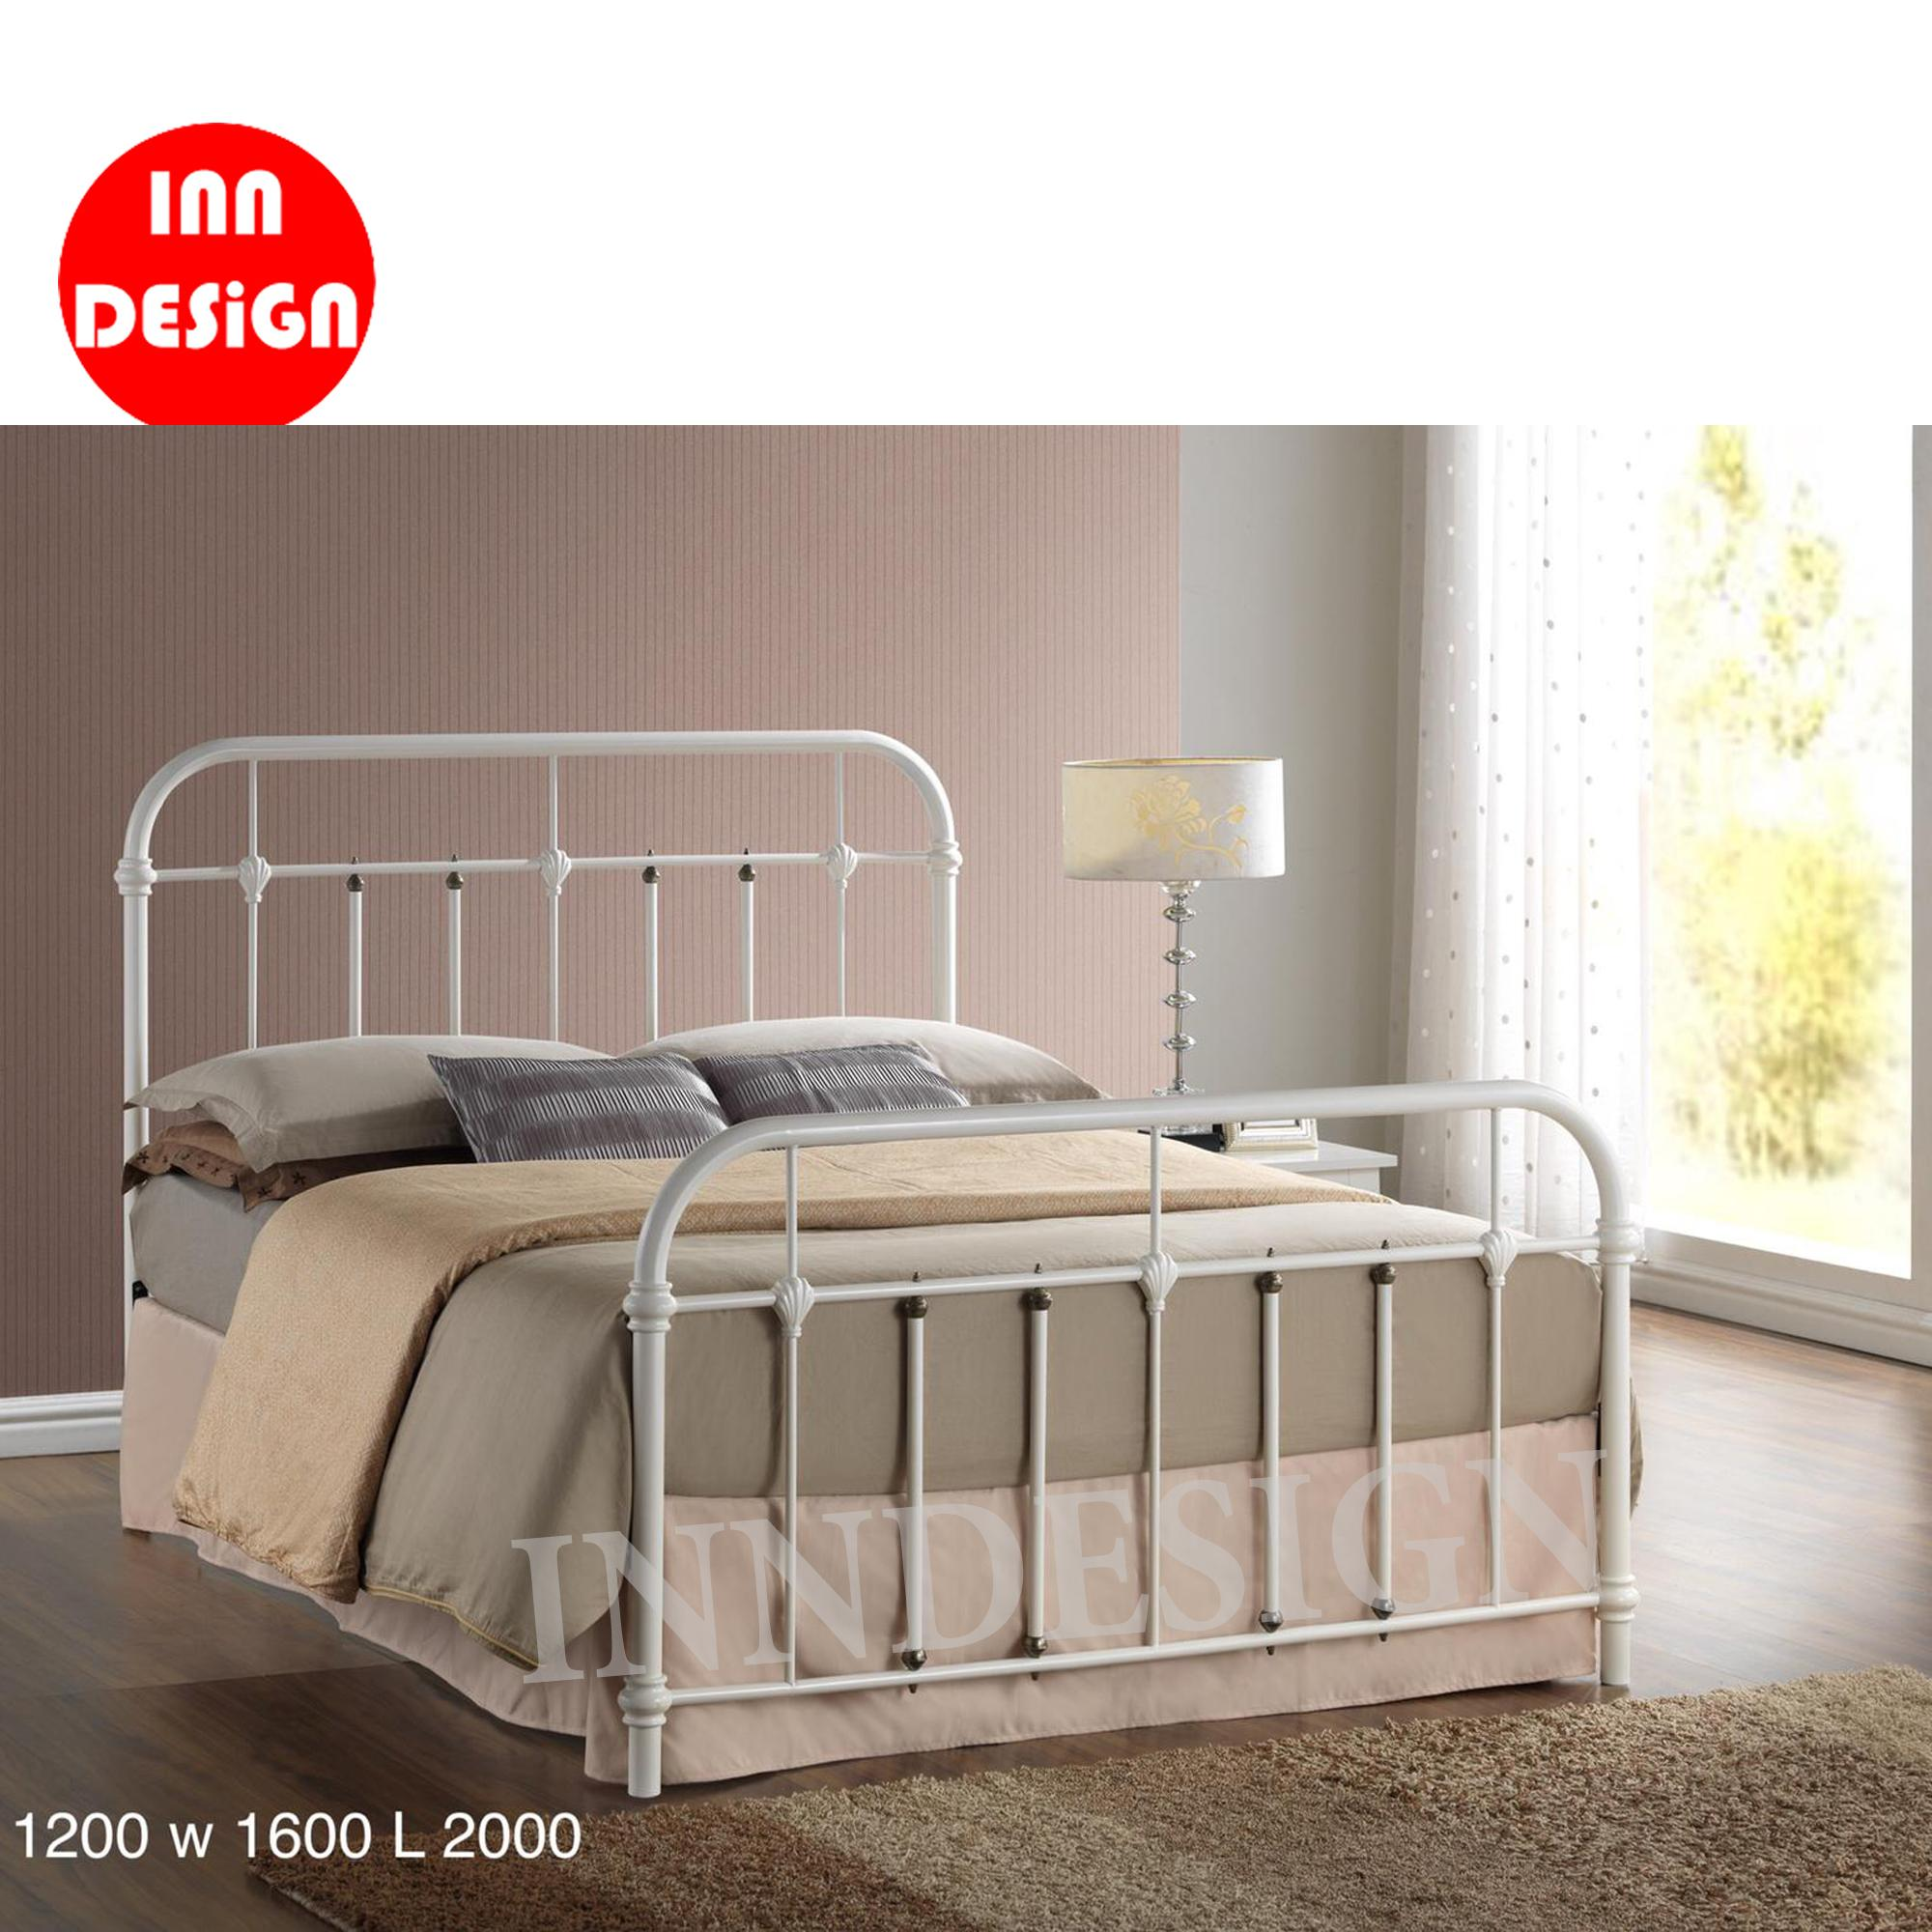 [1 Years Warranty] [FREE INSTALLATION] Ebie Queen Metal Bed / Metal Bed Frame (Queen)